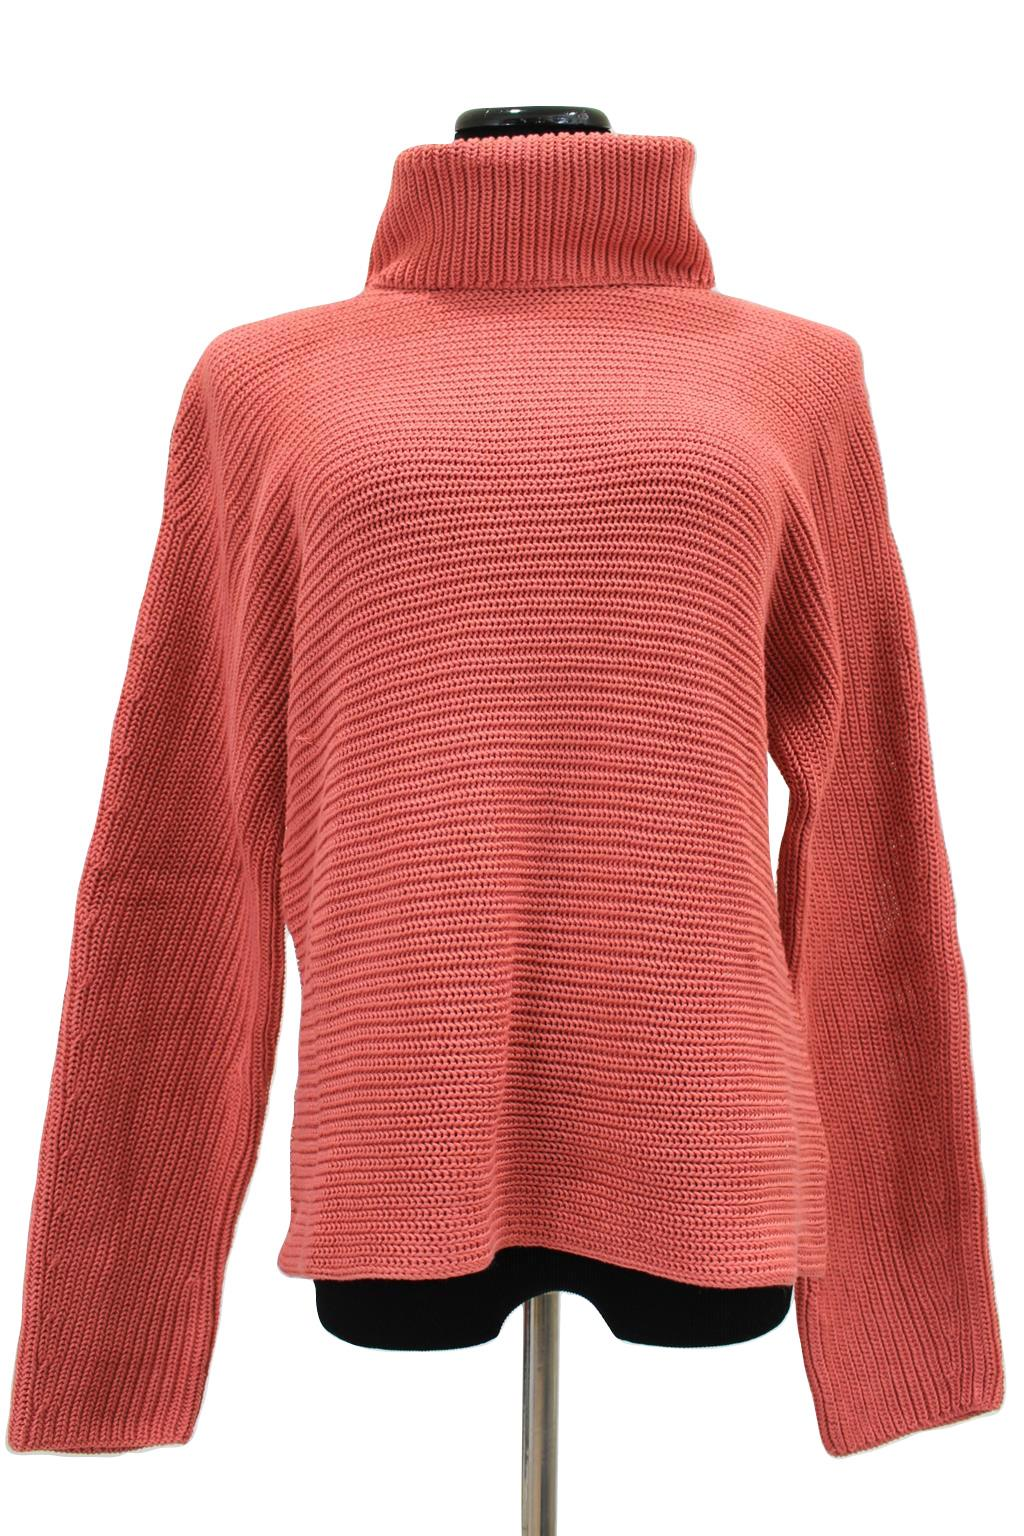 Apricot Wide Horizontal Ribbed Sweater Size M